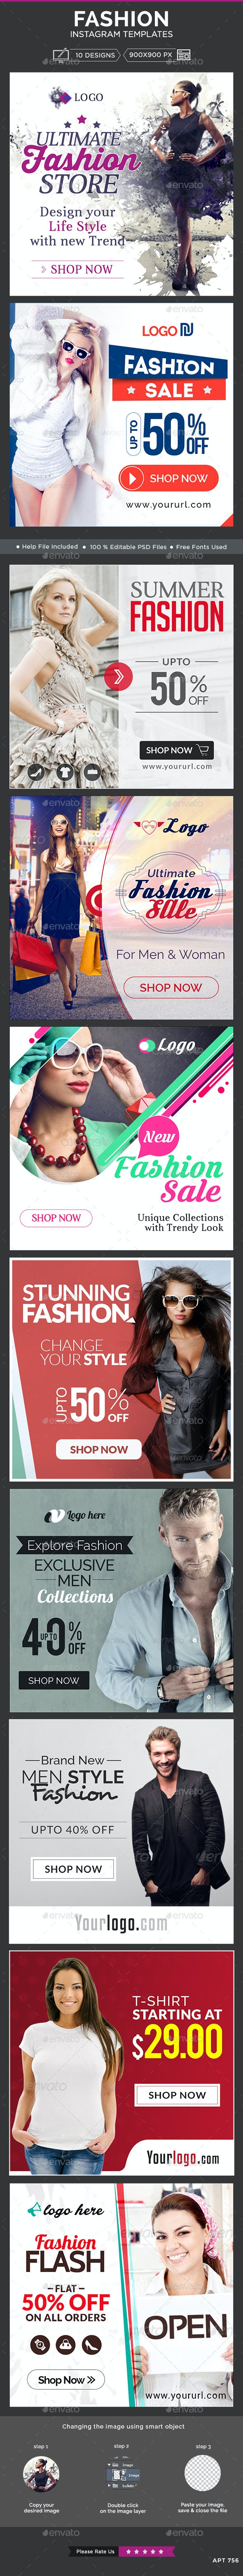 Fashion Instagram Templates - 10 Designs - Banners & Ads Web Elements